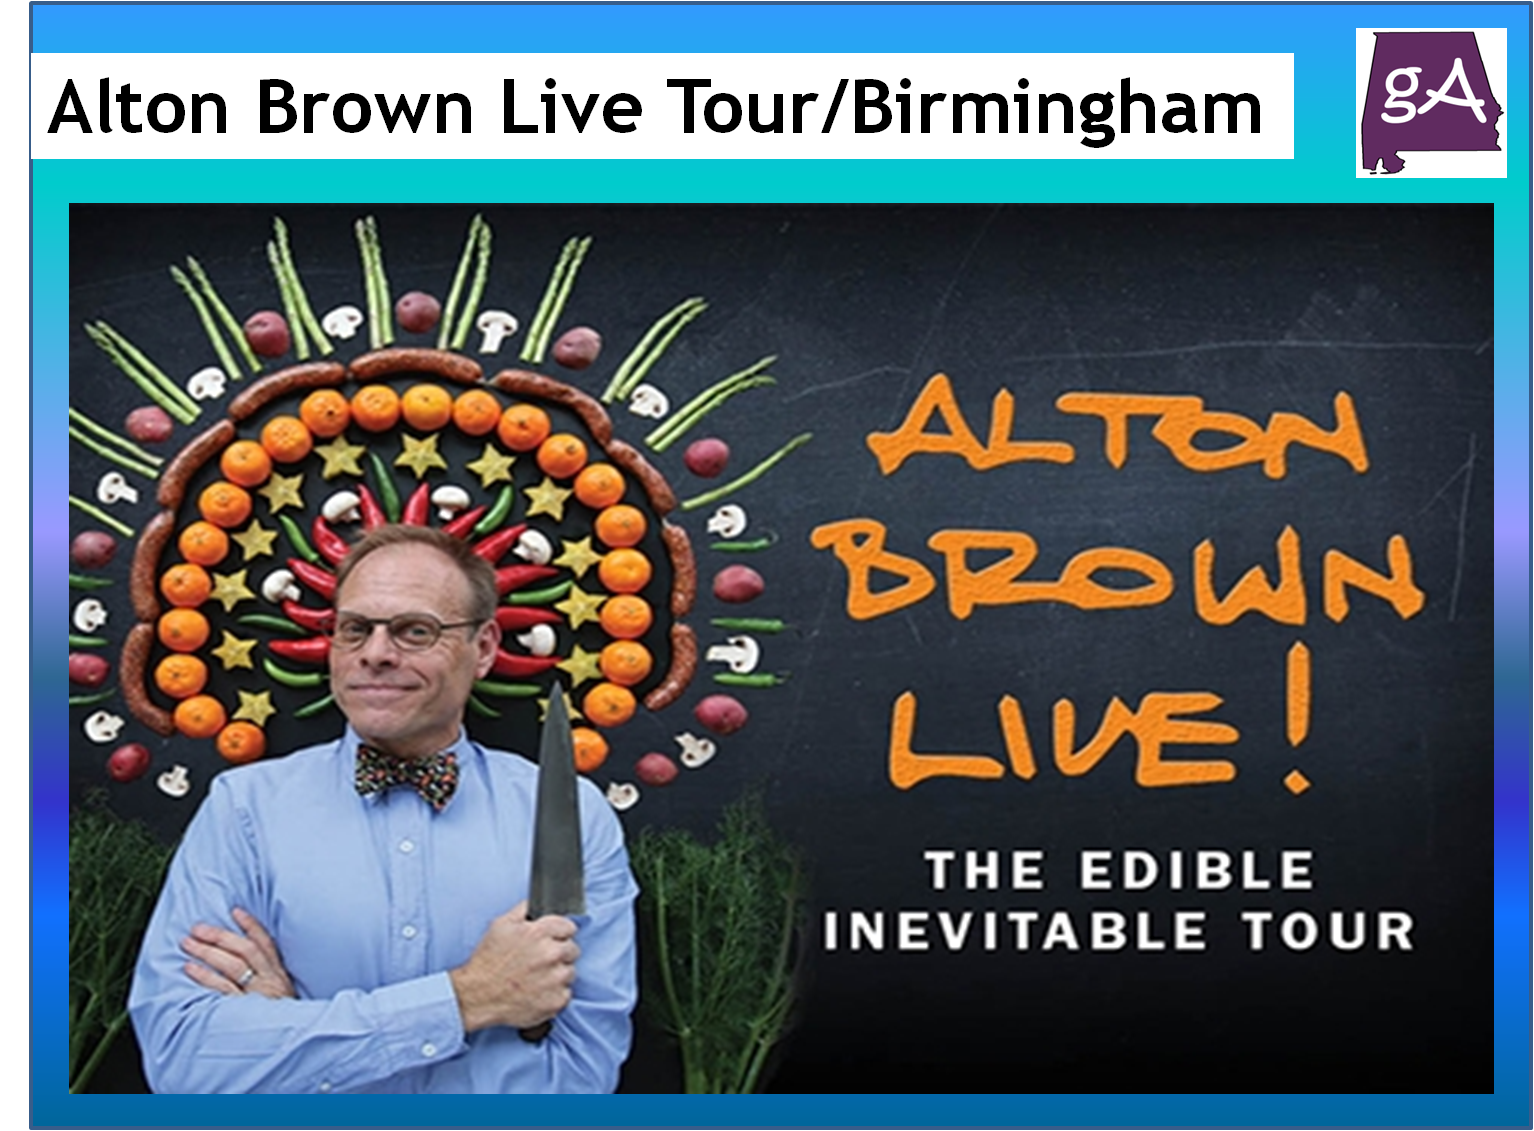 Alton Brown Tour